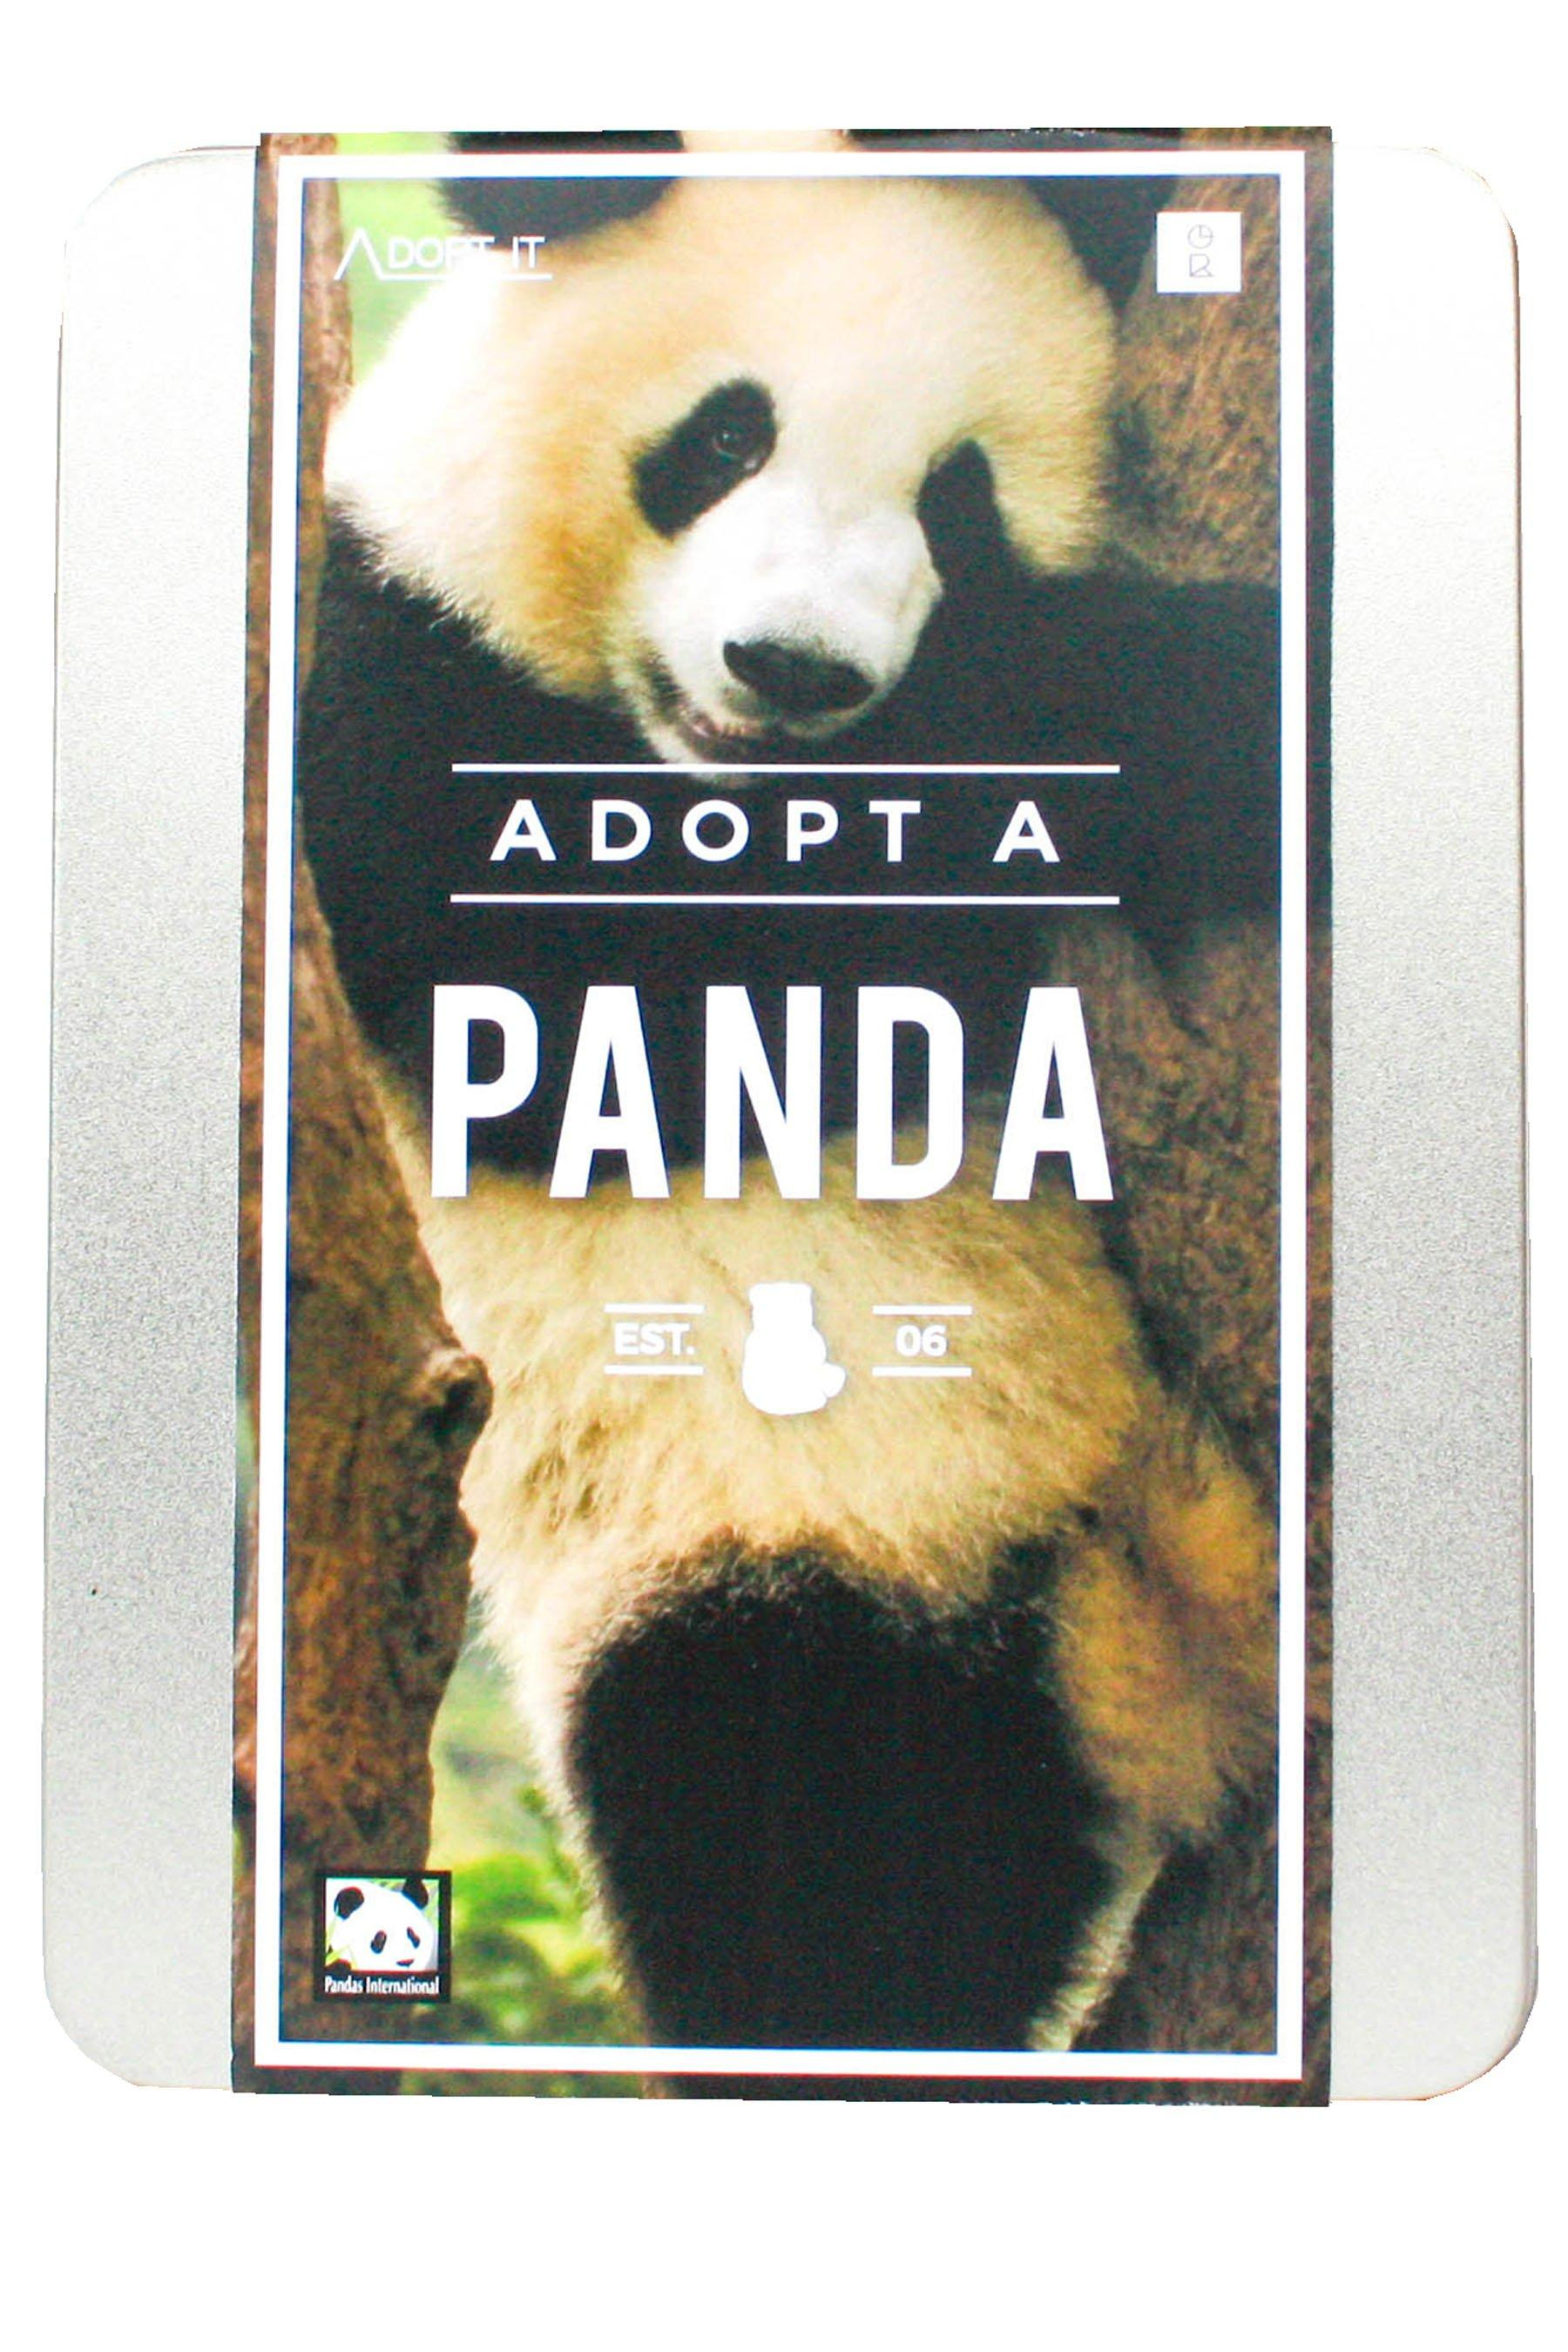 Compare prices for Adopt It - Adopt a Panda